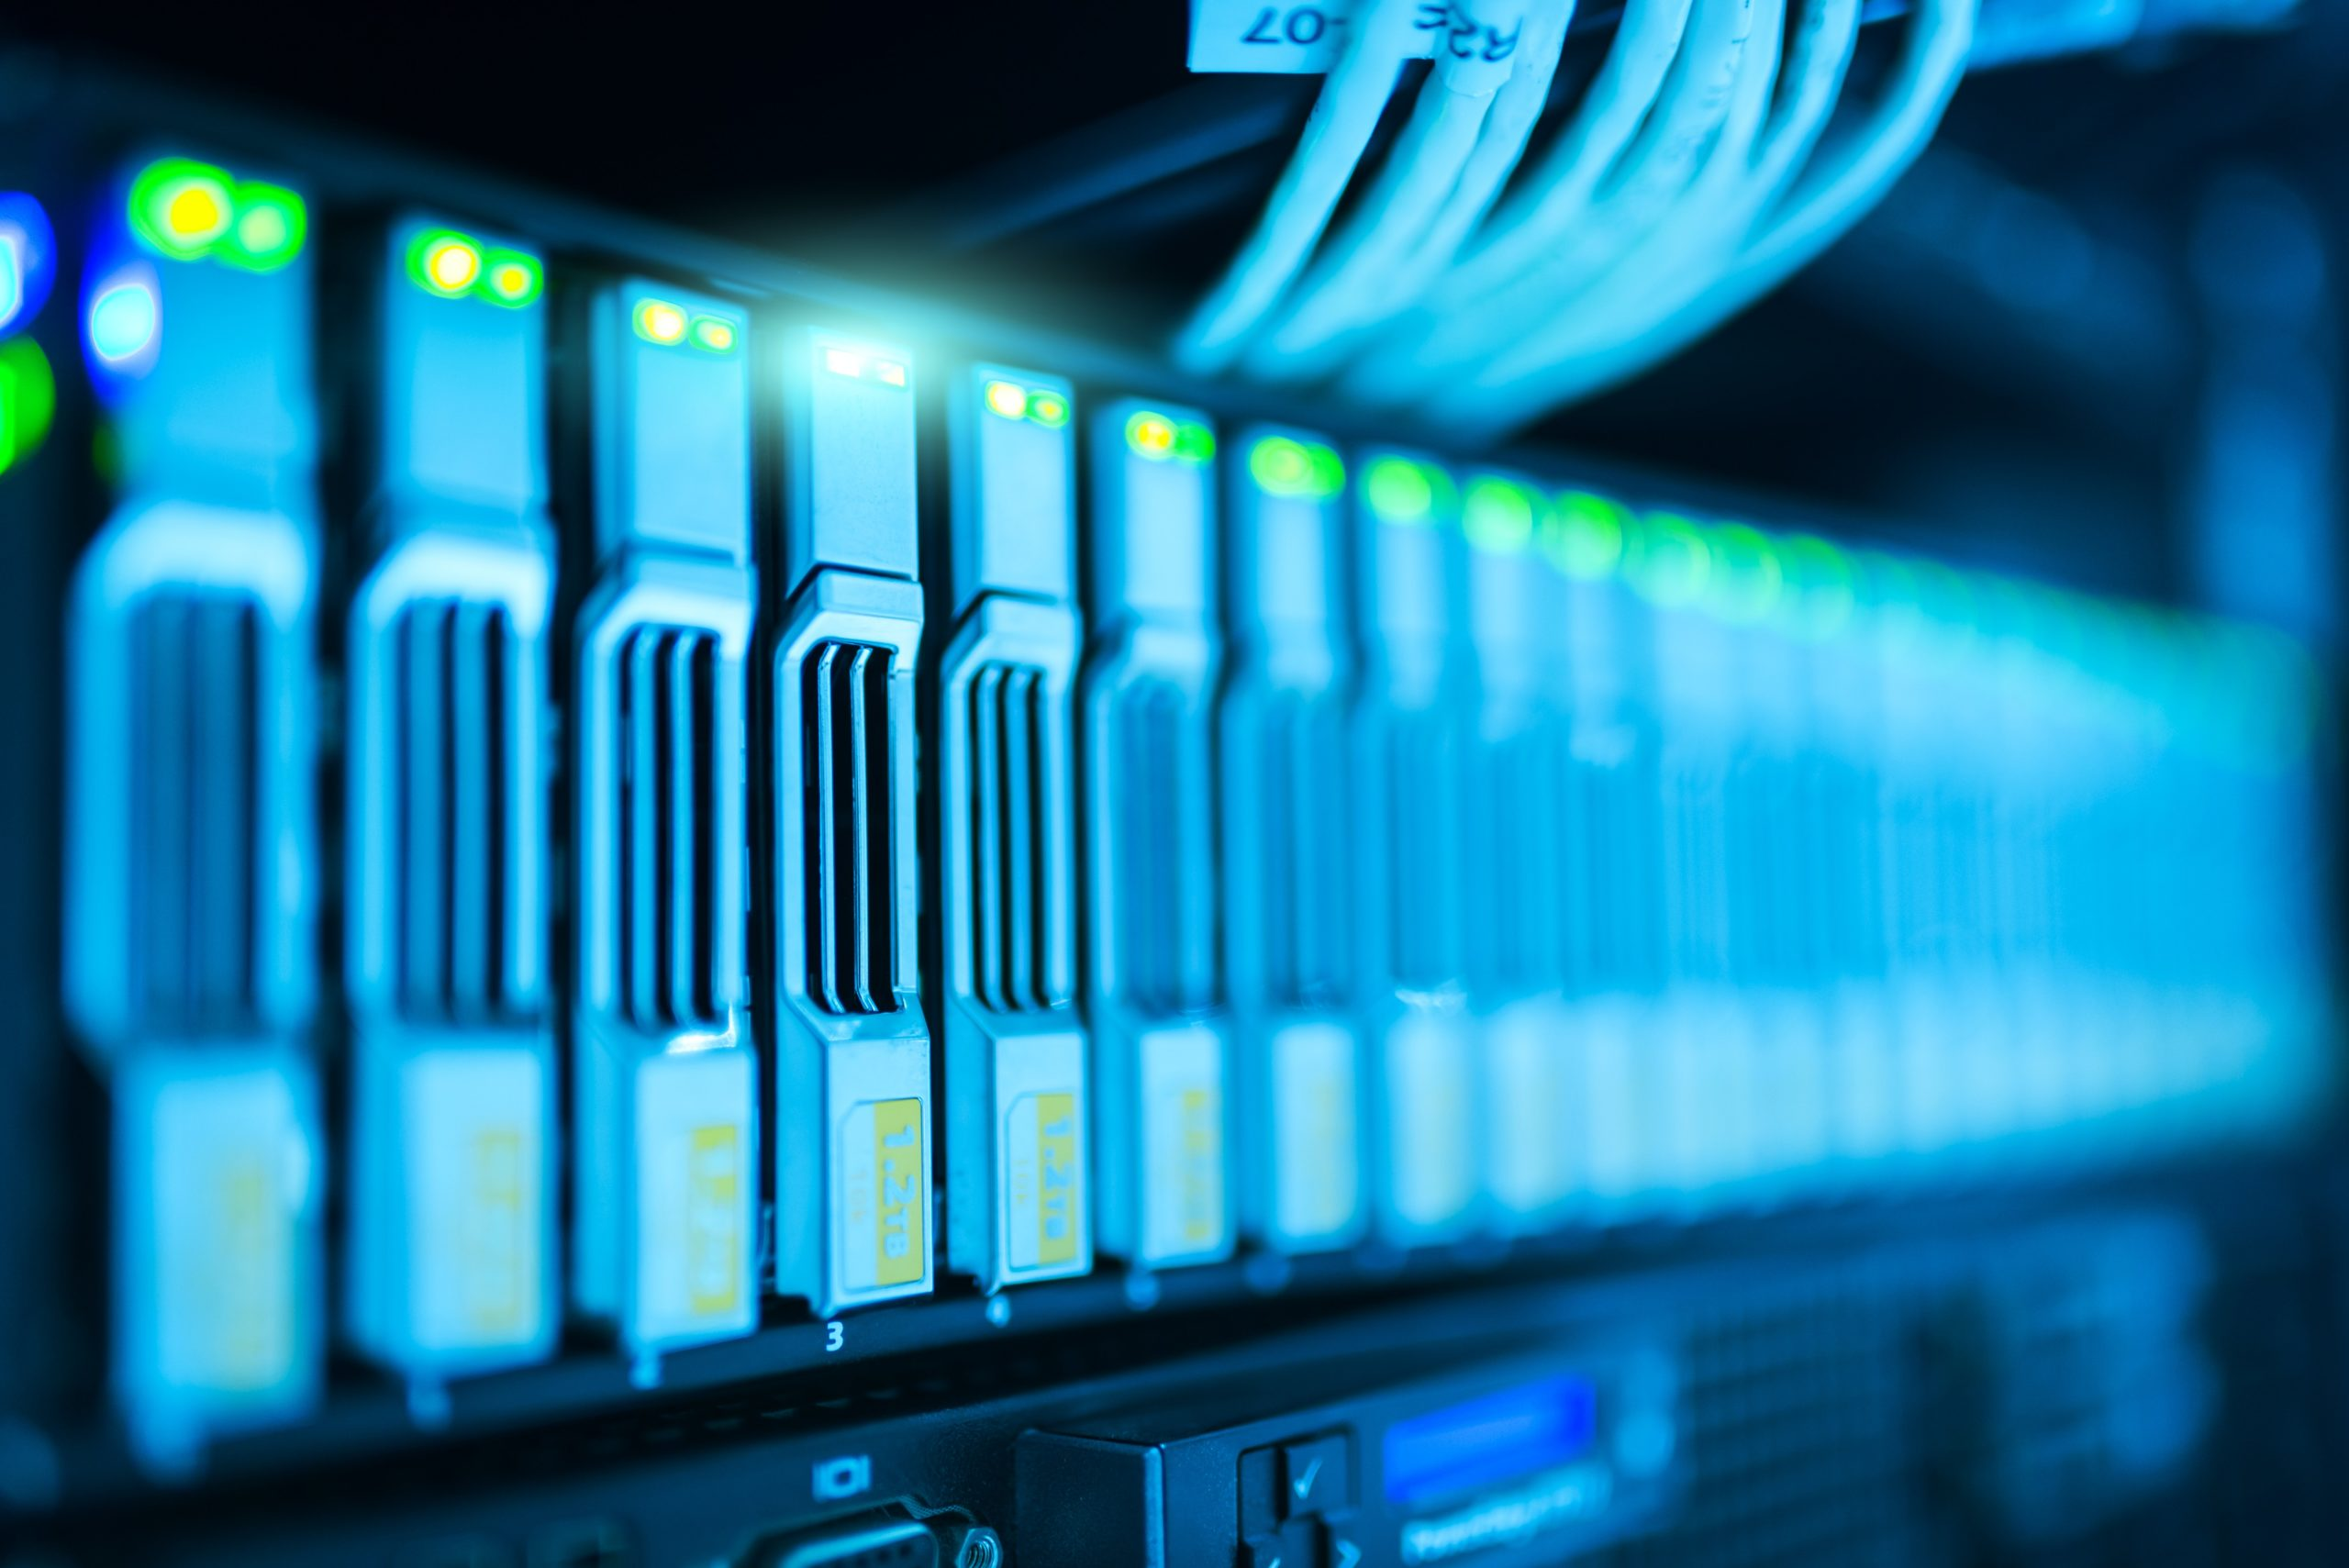 7 Dedicated Server Types & Their Use Cases Explained